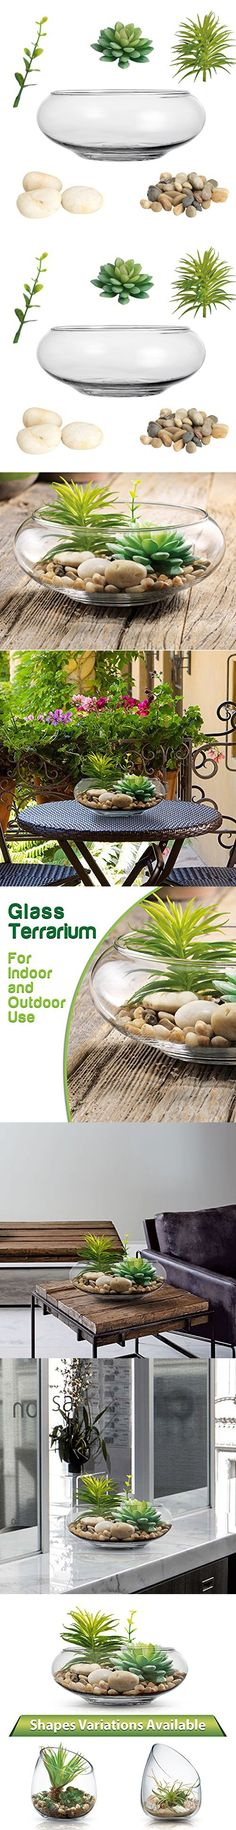 Clear Glass Terrarium Vase, Planter Bowl with Succulents and Decorative Stones - Decorative Centerpiece (Straight Cut, Top Opening)